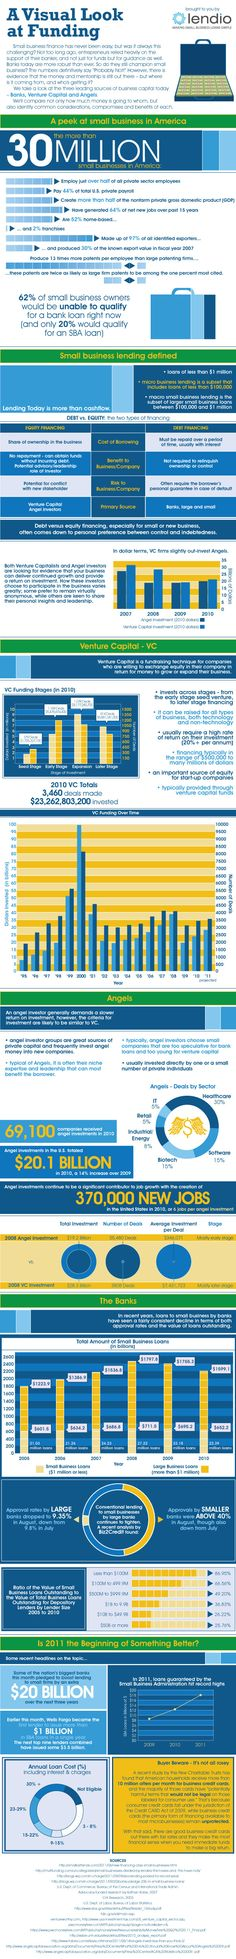 Comparing Equity vs Debt Financing [INFOGRAPHIC]